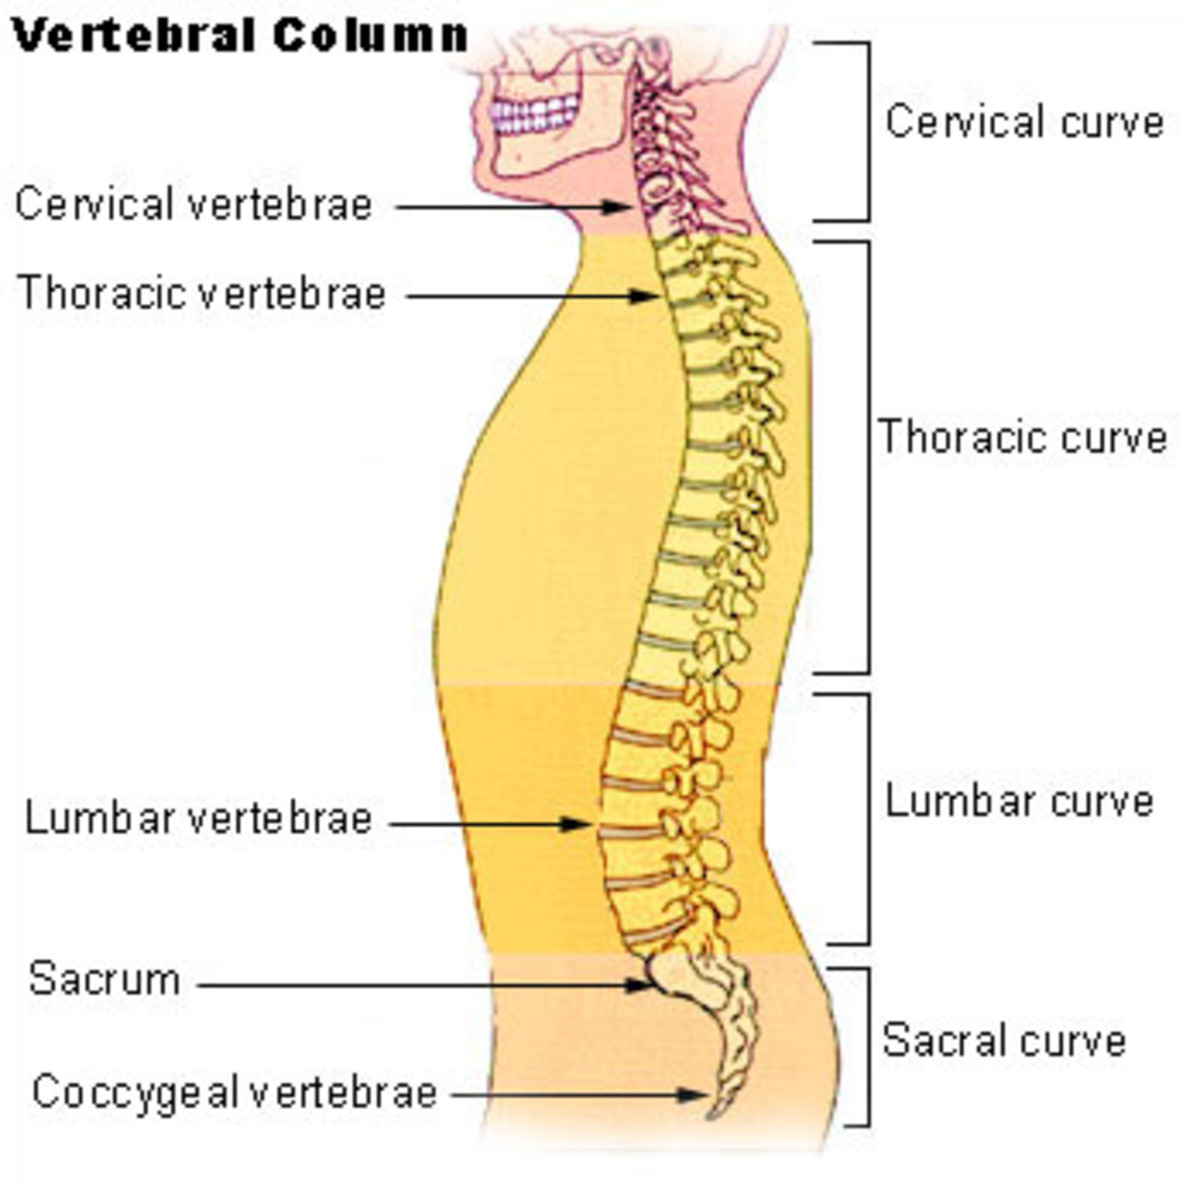 The spine is also called the vertebral column.